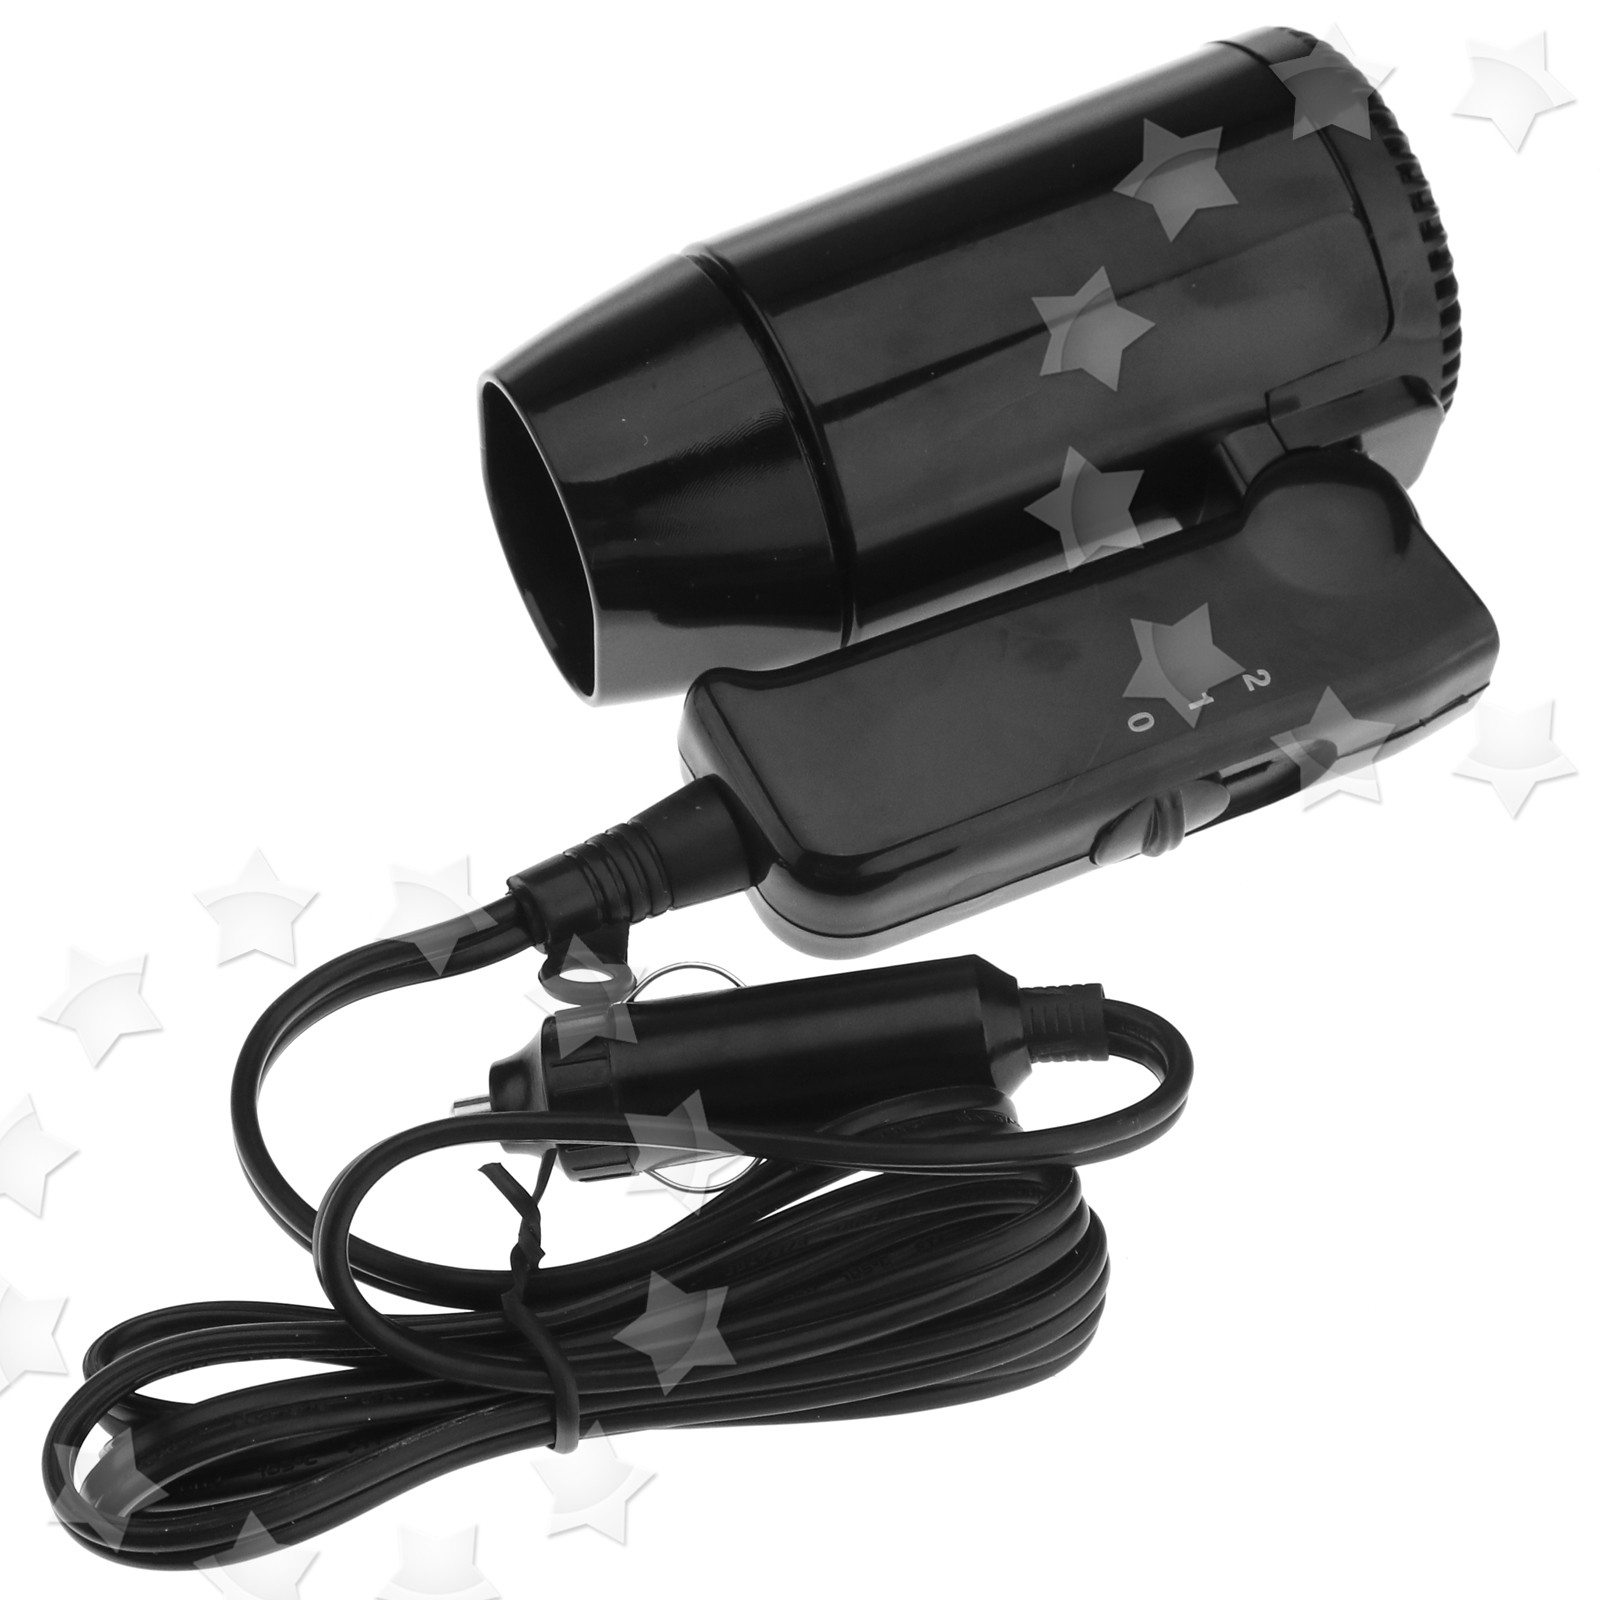 12V 220W Black Compact Travelling Festival & Camping